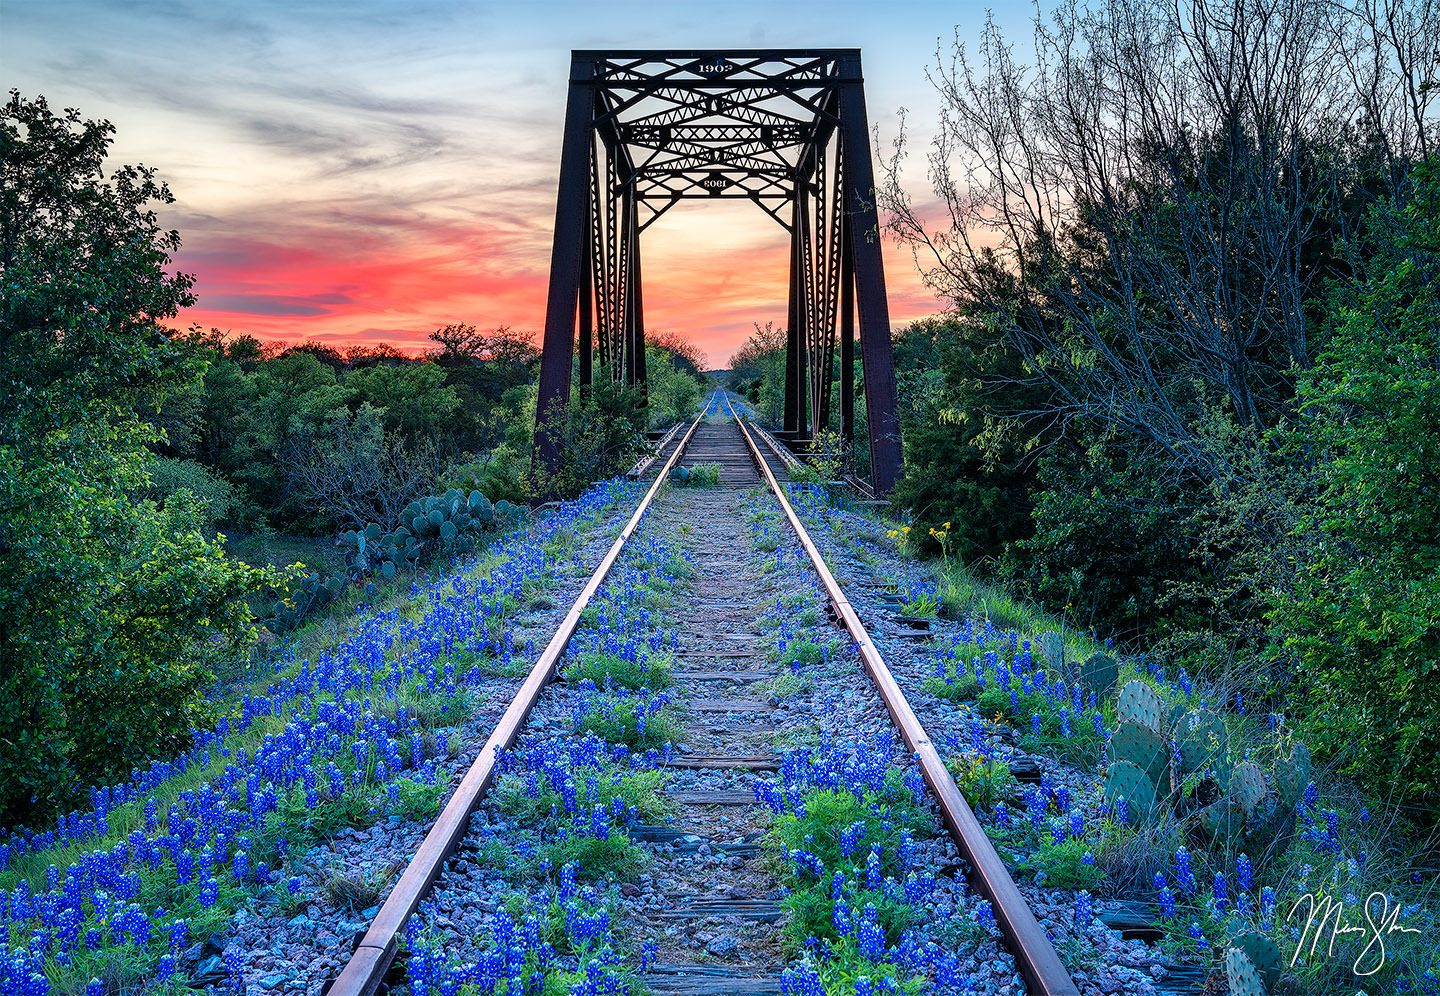 Texas photography: Bluebonnets, Ennis & the Texas Hill Country